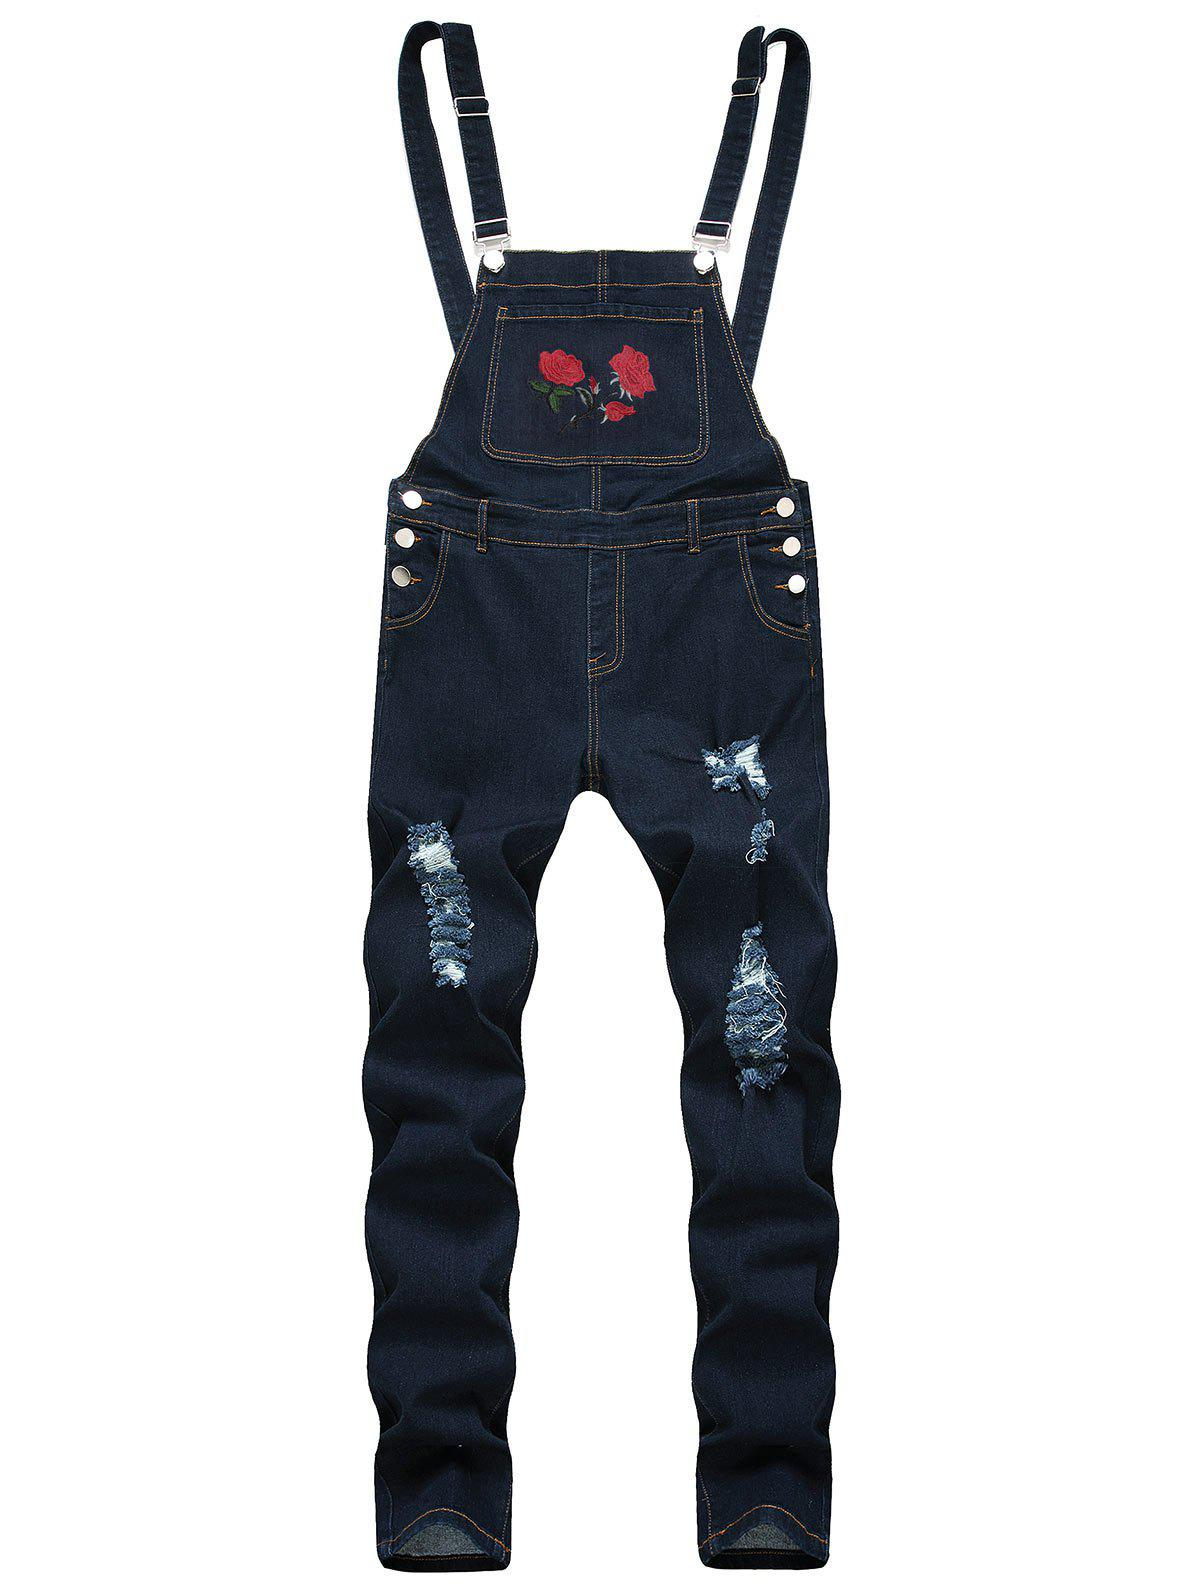 Ripped Flower Embroidered Tapered Overall Jeans - DEEP BLUE 40